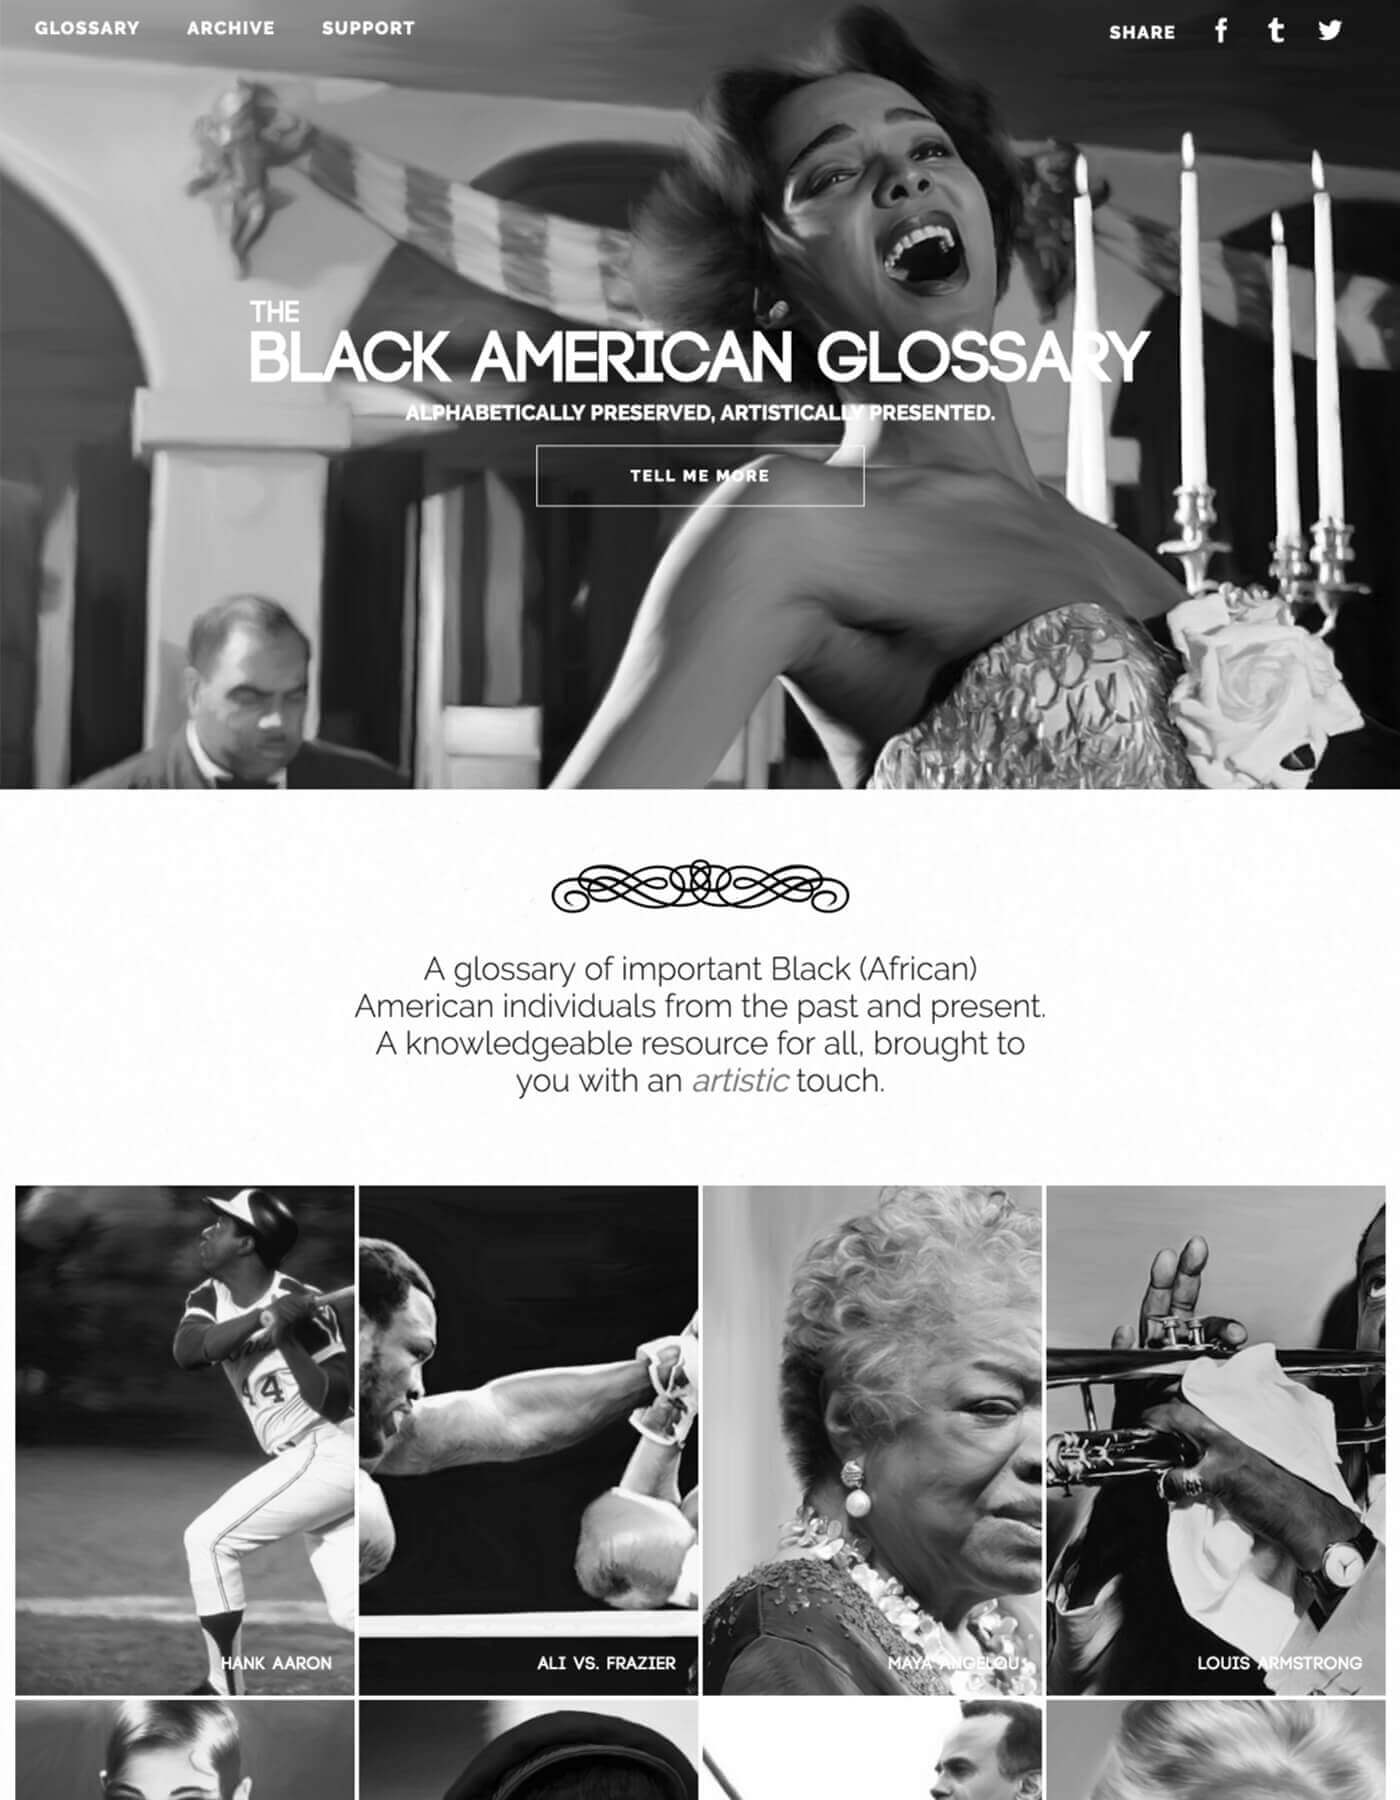 The Black American Glossary: 2014